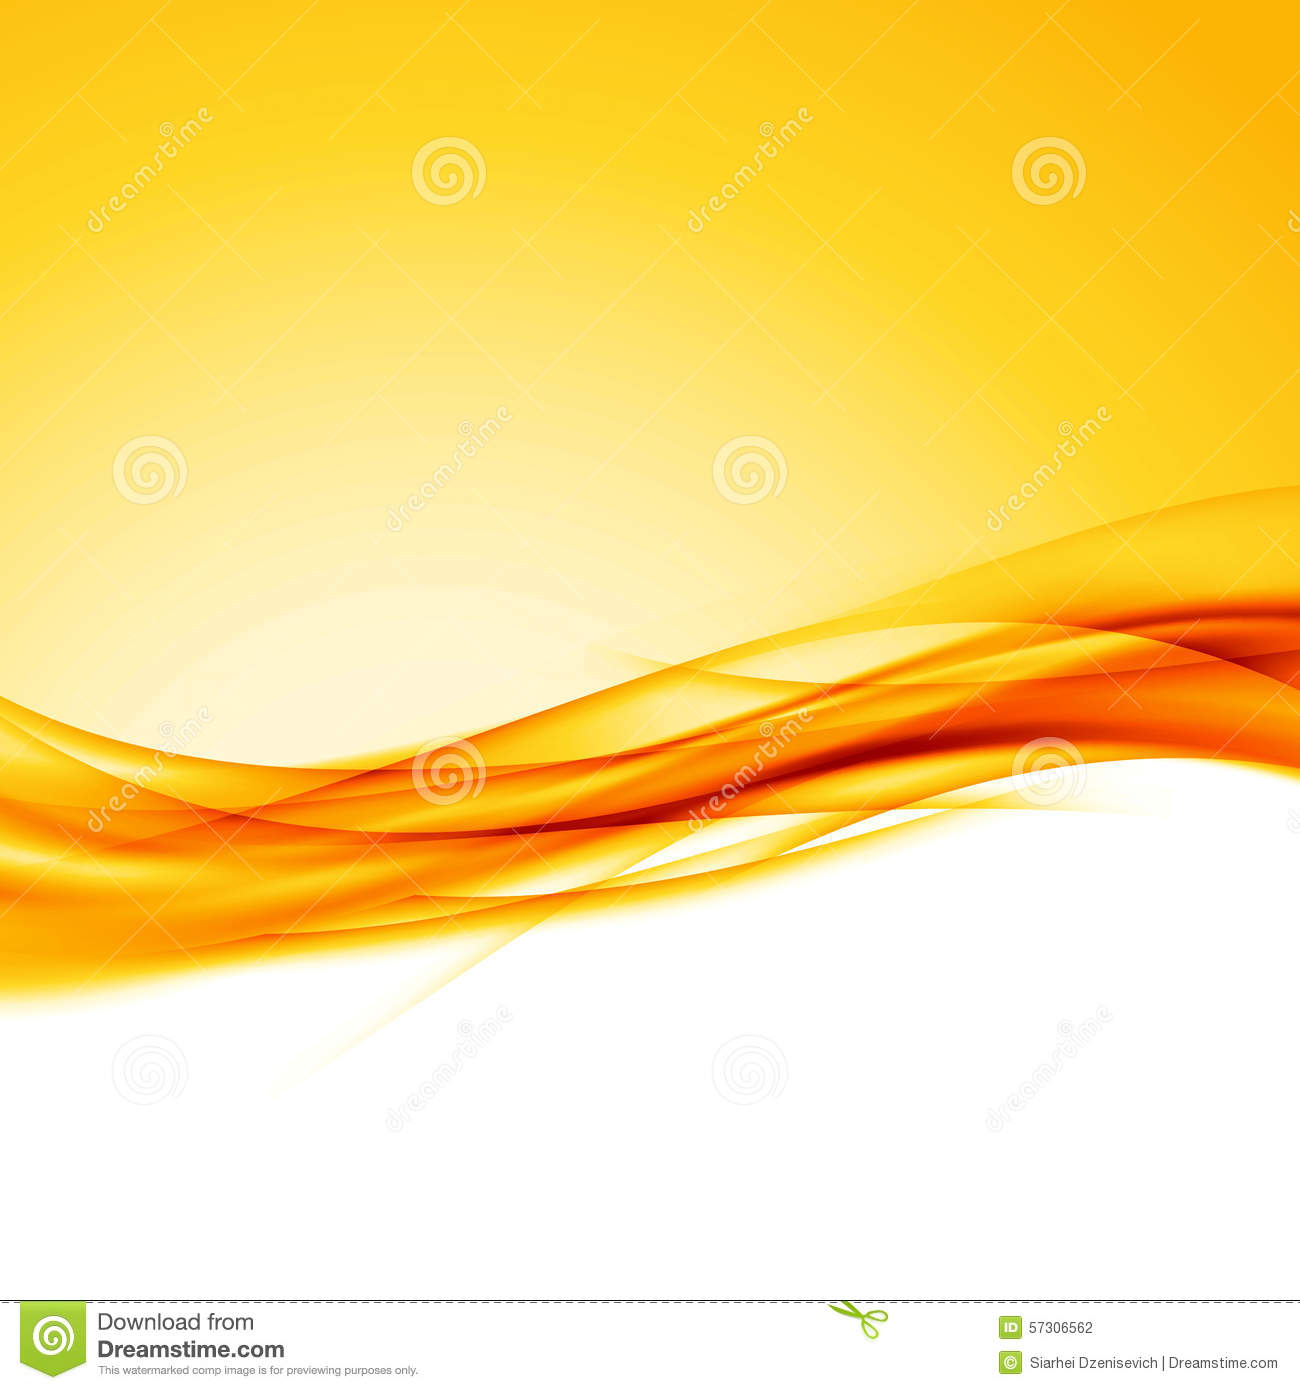 Bright orange swoosh wave border background modern futuristic abstract ...